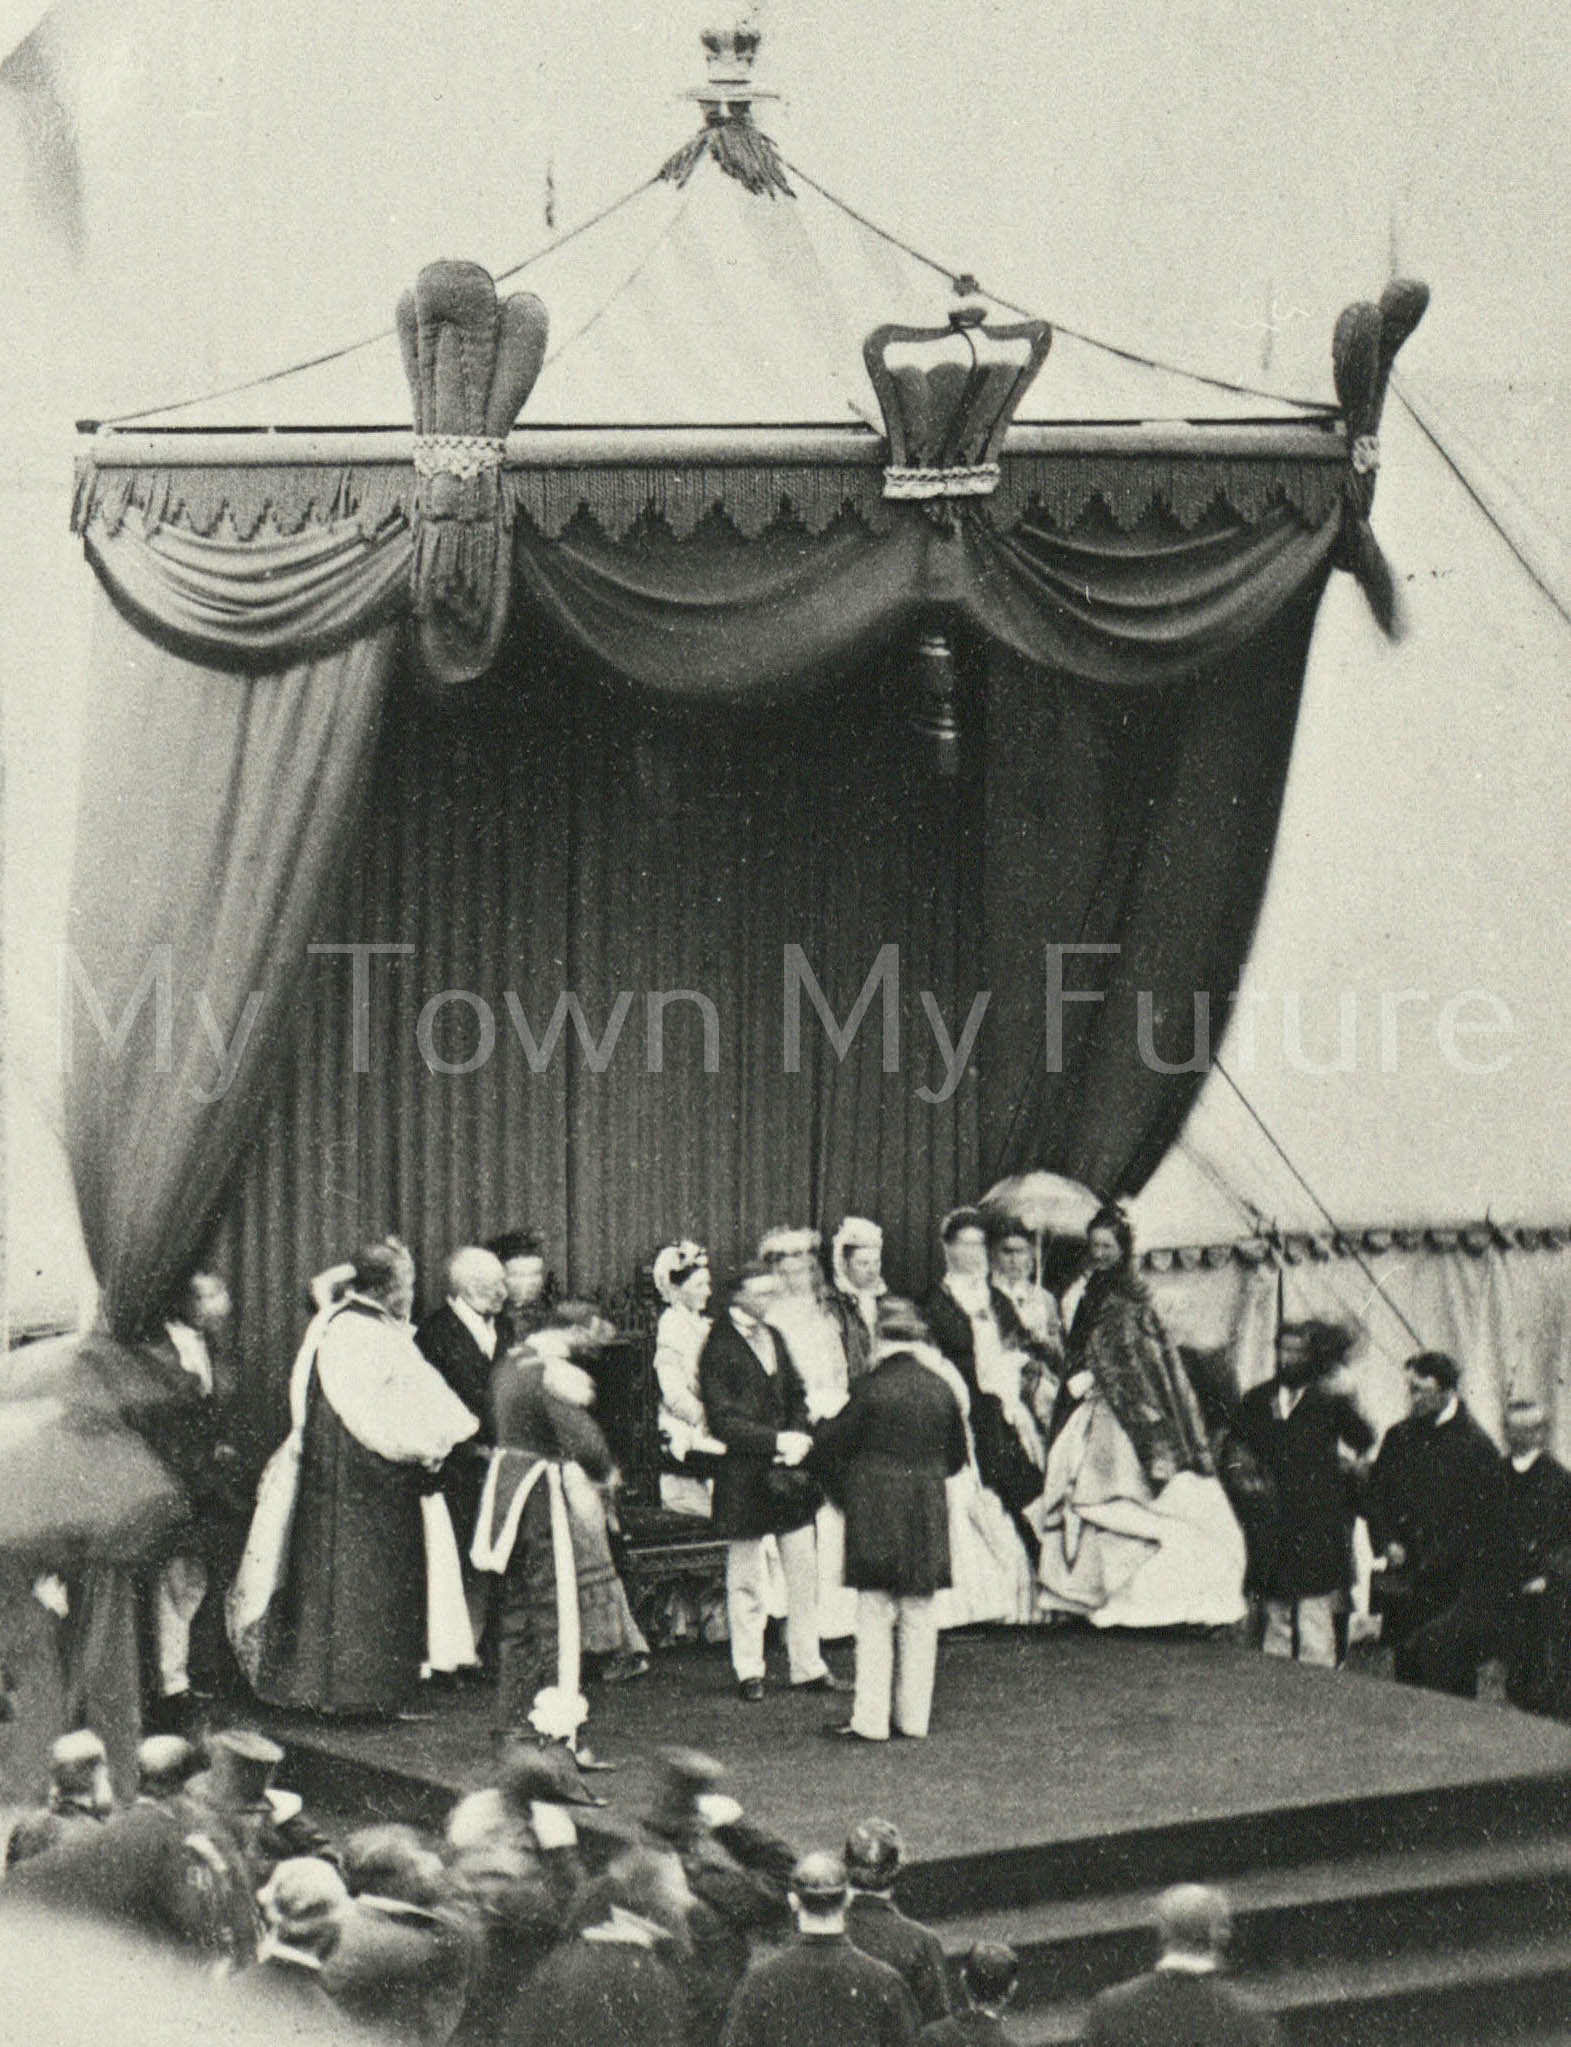 Albert Park- Opening of the Park by Prince Arthur of Connaught, 1868 - Dept. of Planning - Cleveland County Council